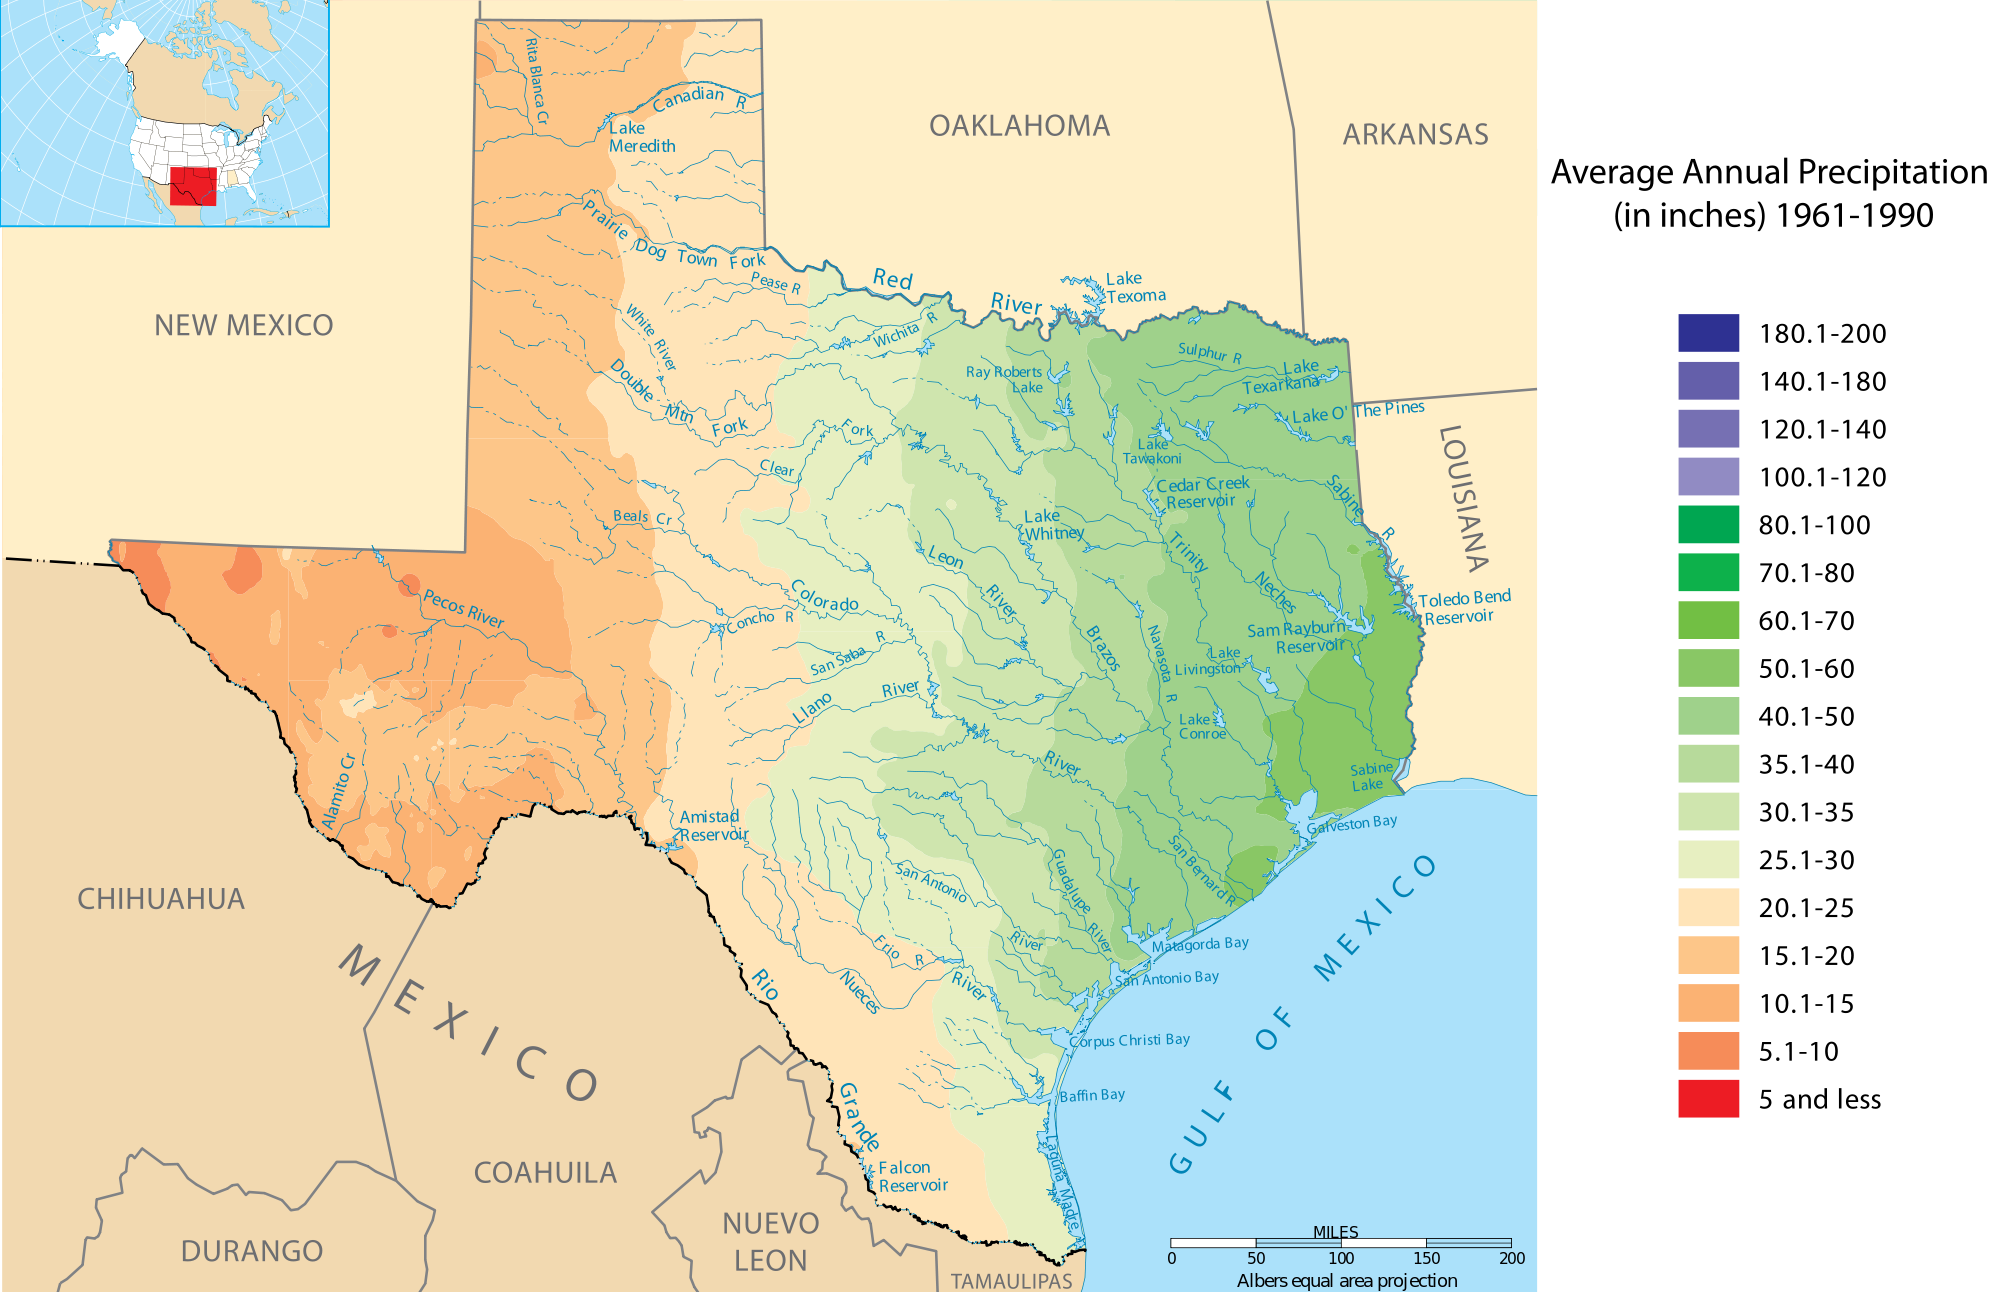 history of texas forests wikipedia the free encyclopedia